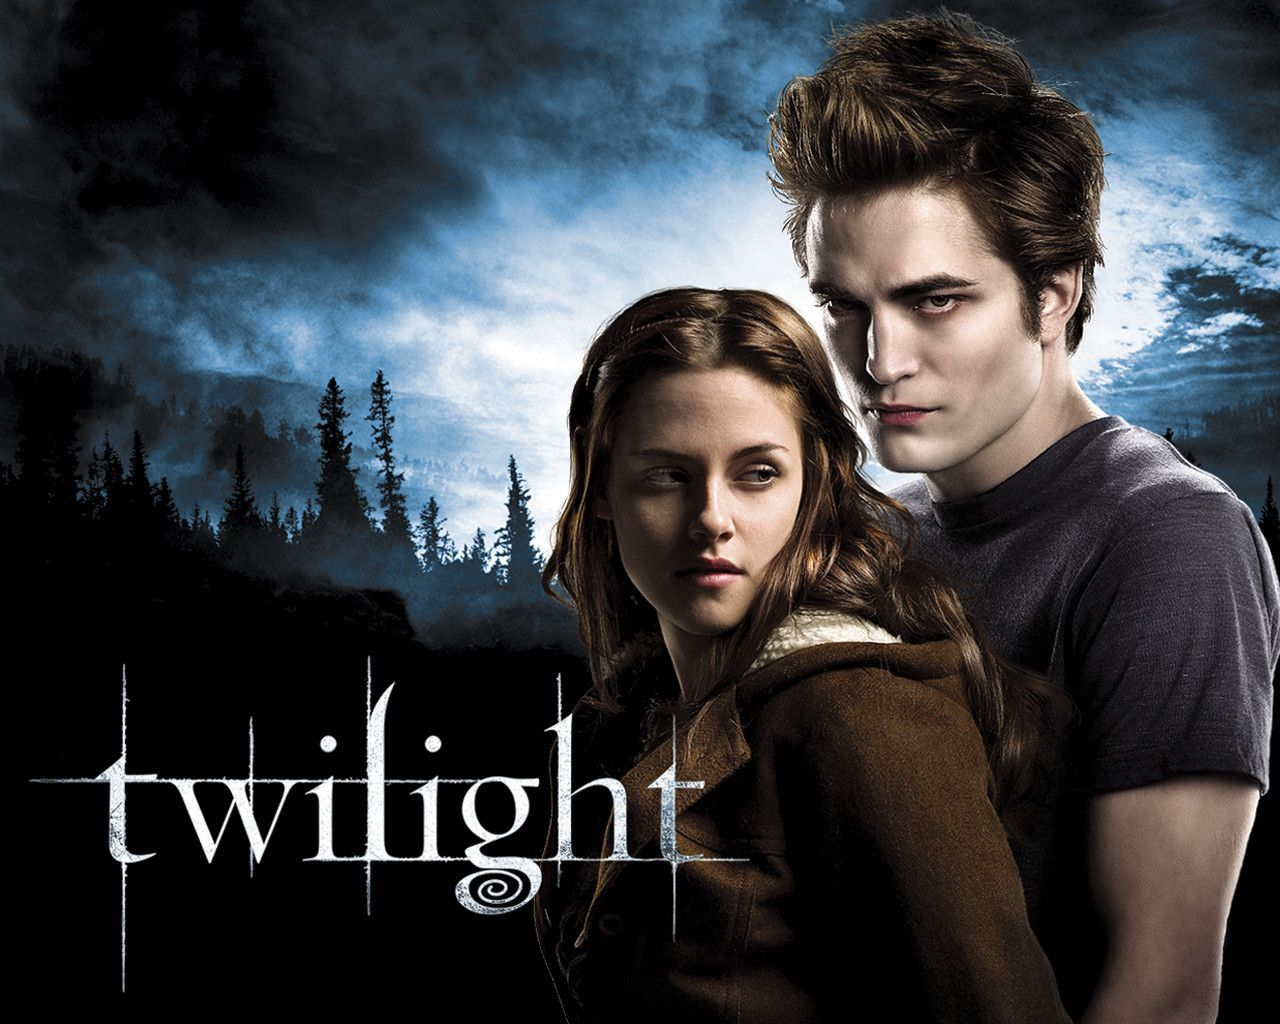 Twilight HD Wallpaper Download